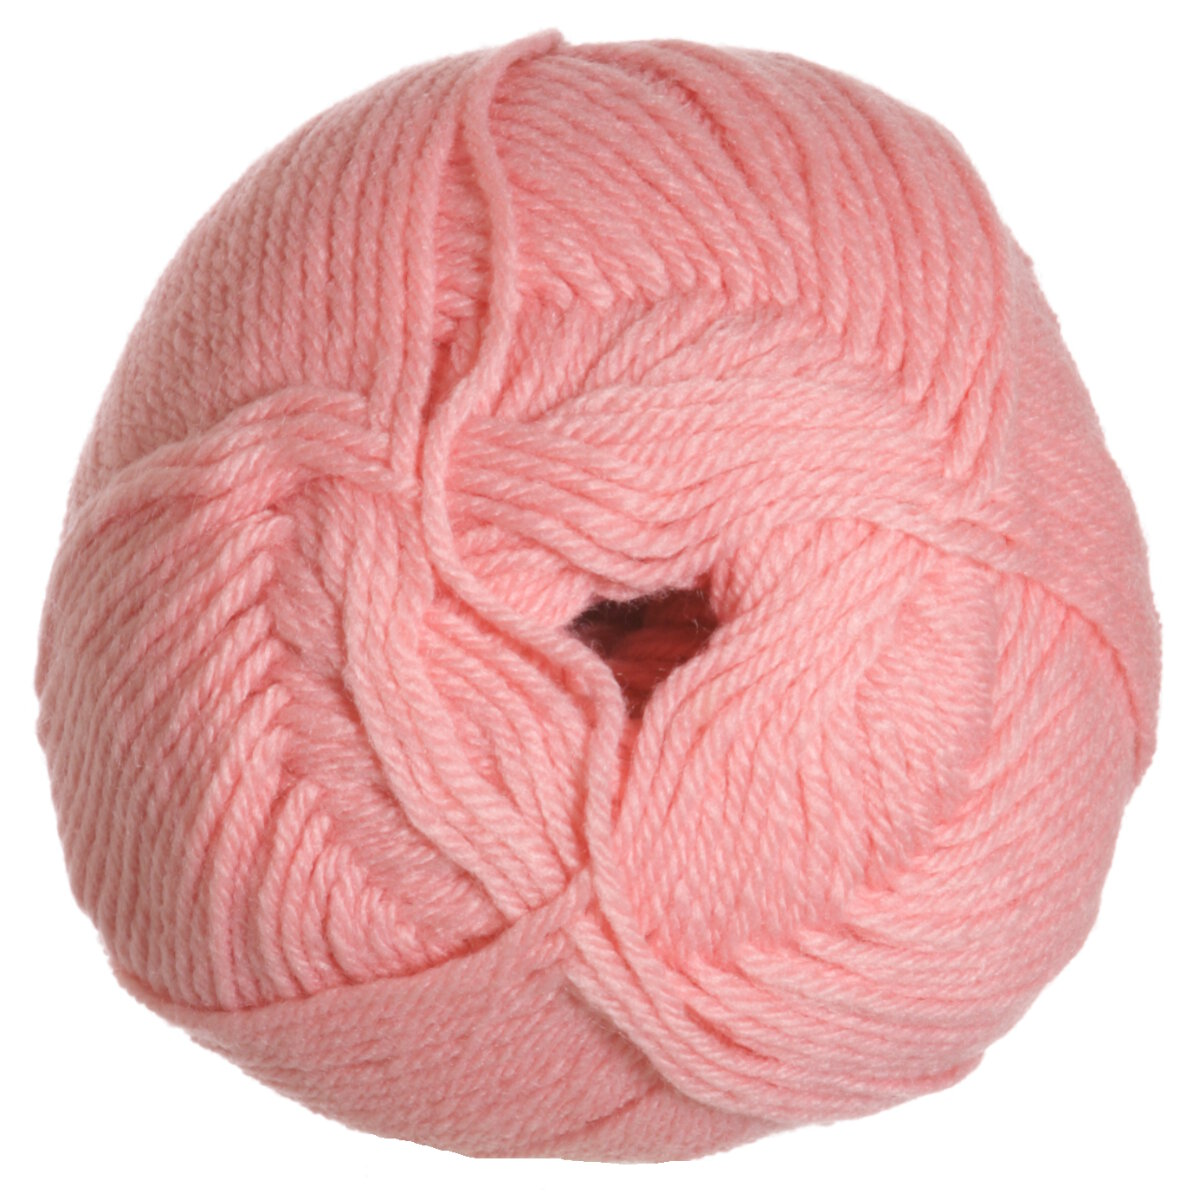 Sirdar Snuggly 4-Ply Yarn Project Ideas at Jimmy Beans Wool